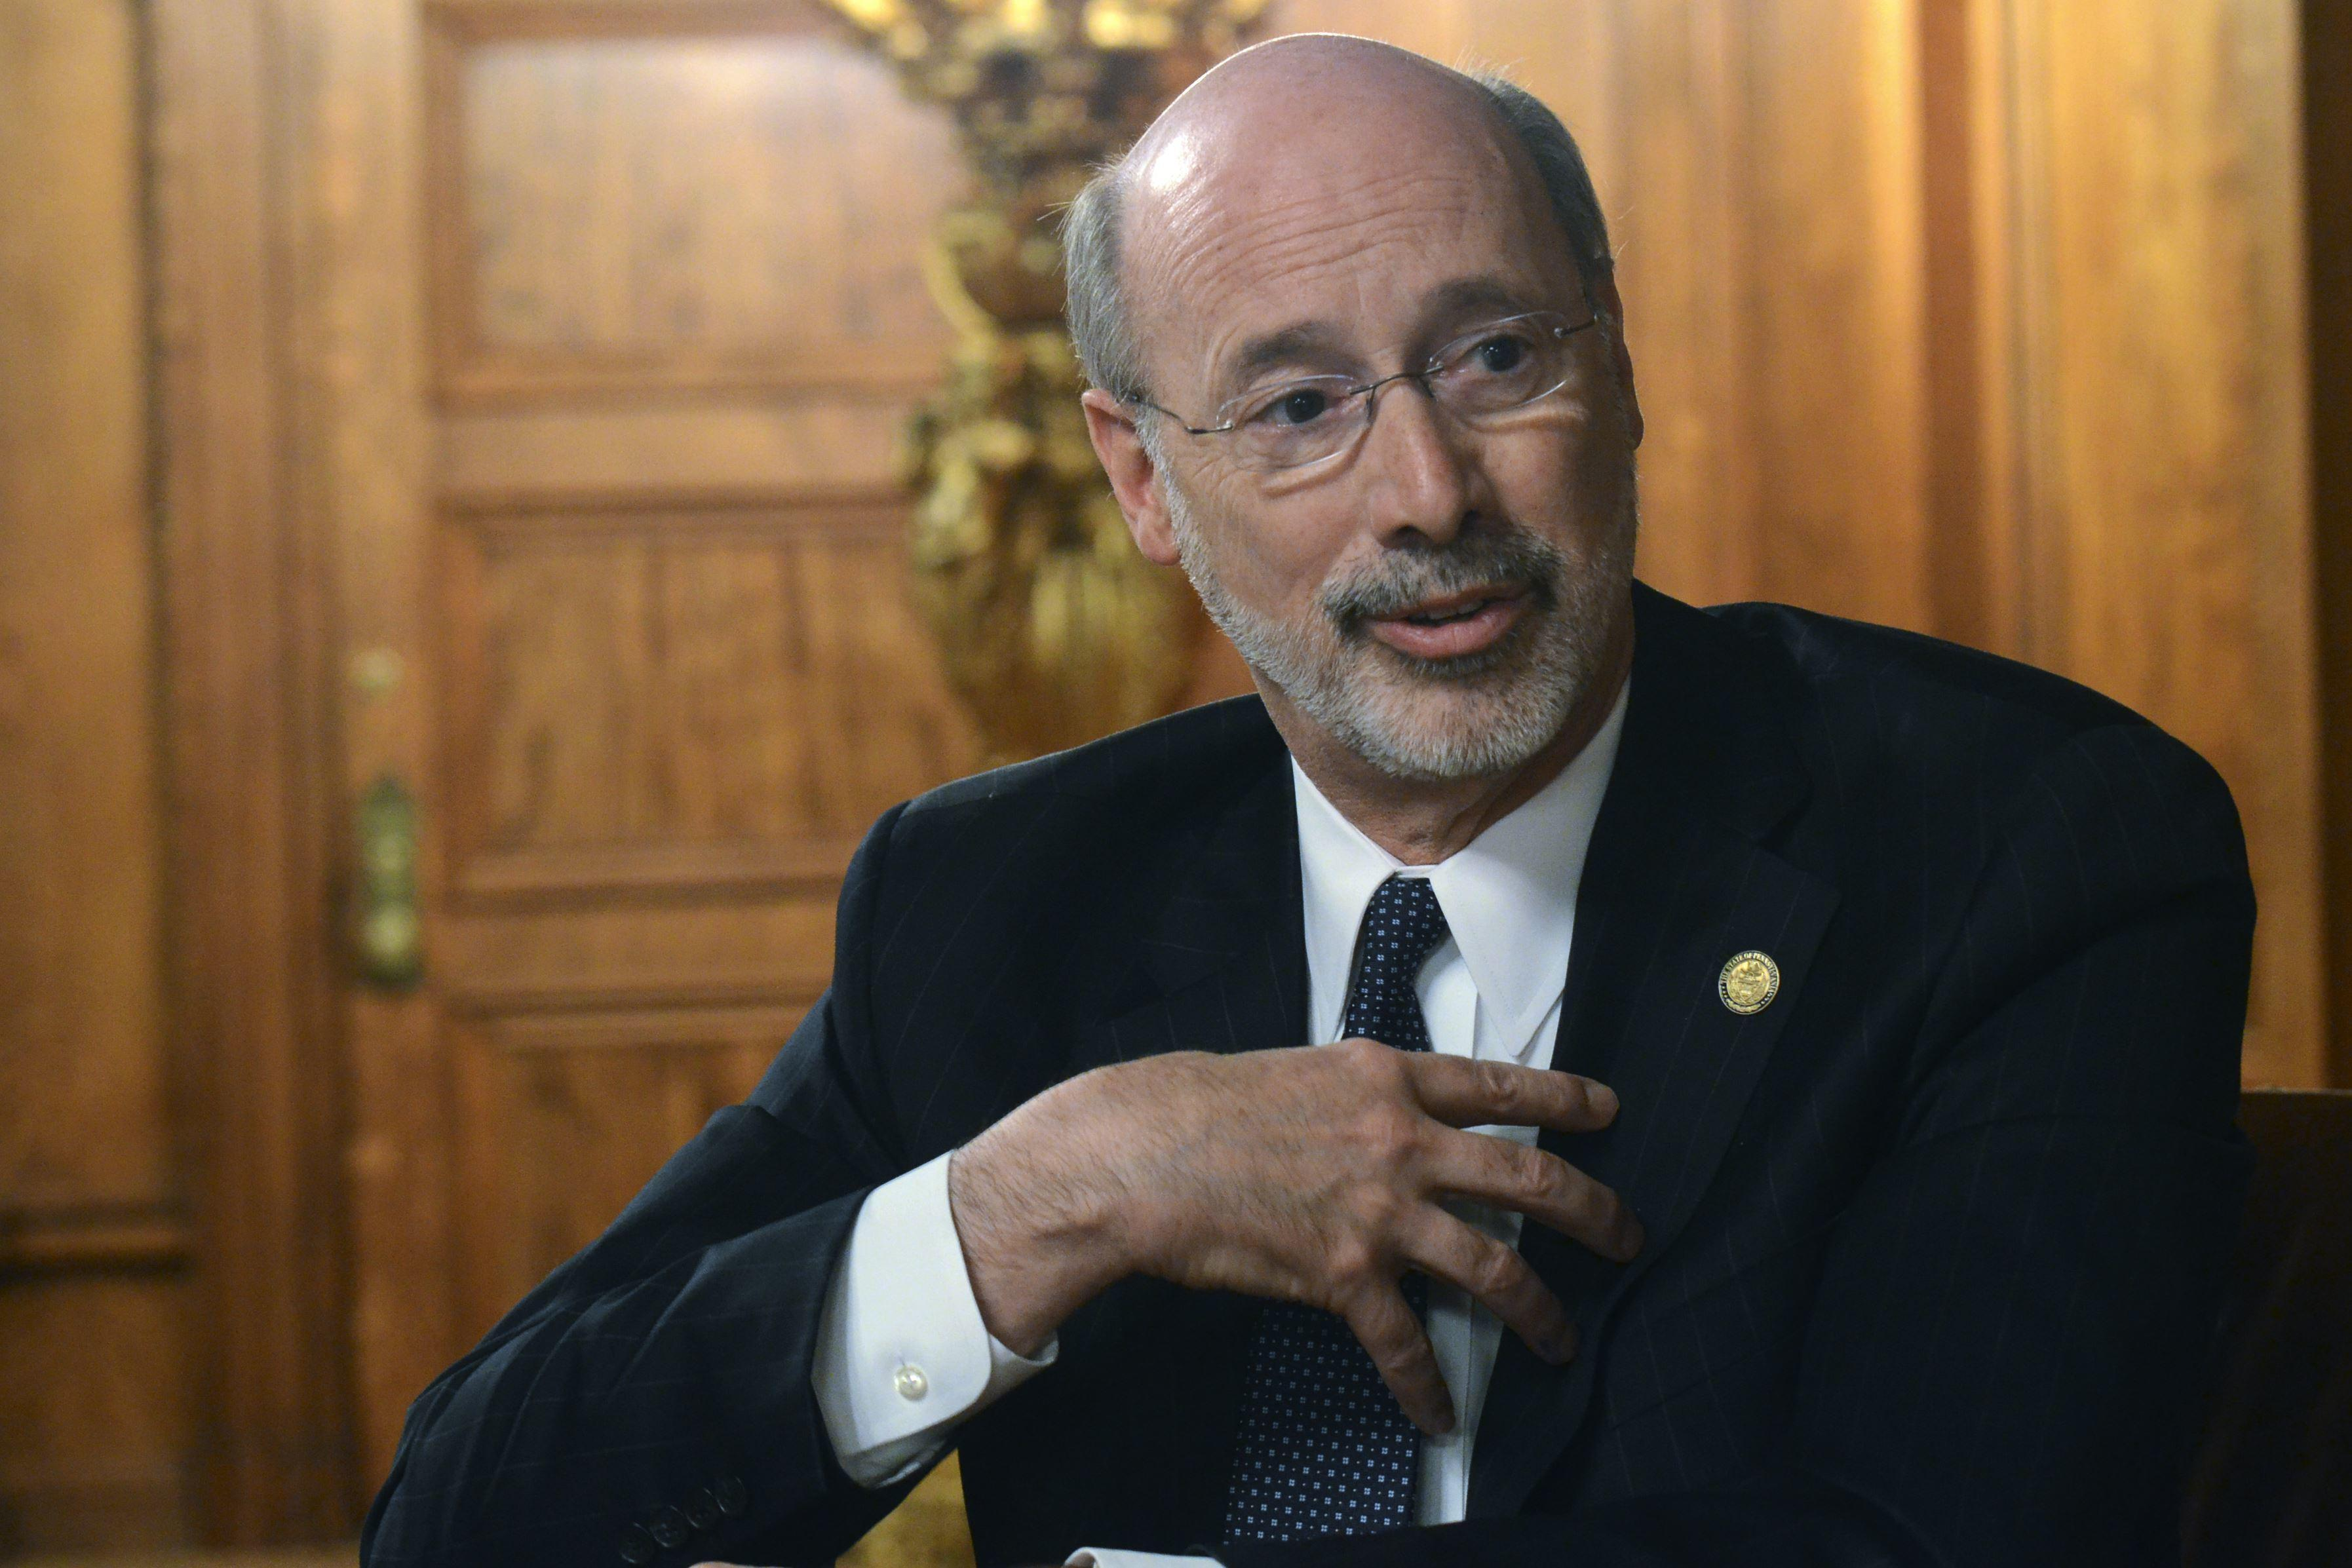 Image of Pennsylvania Governor Tom Wolf